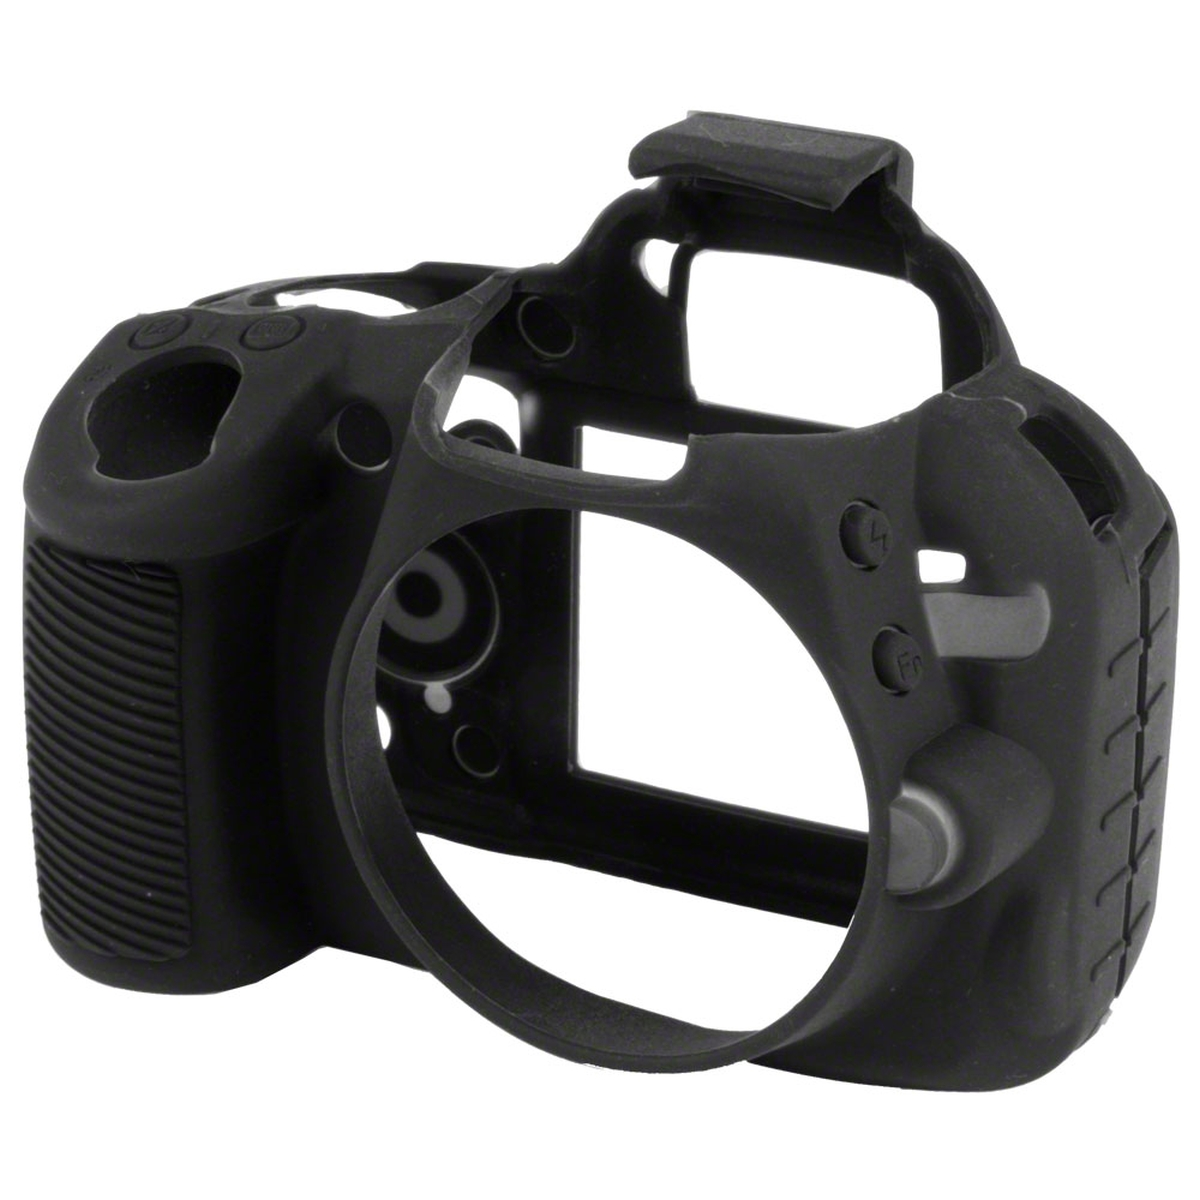 Walimex pro easyCover for Nikon D3100